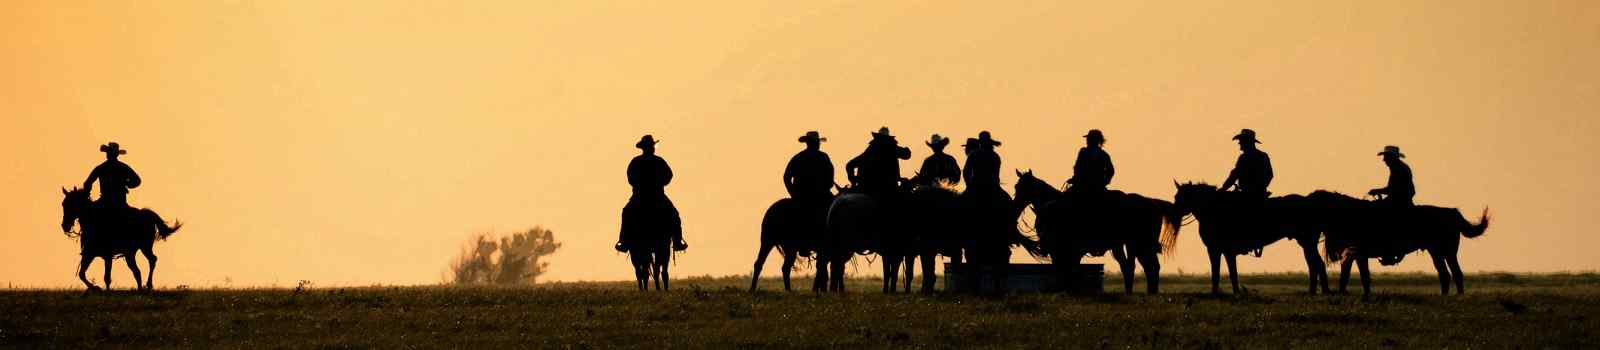 GOOSEWING-RANCH -Silouette of Cowboys